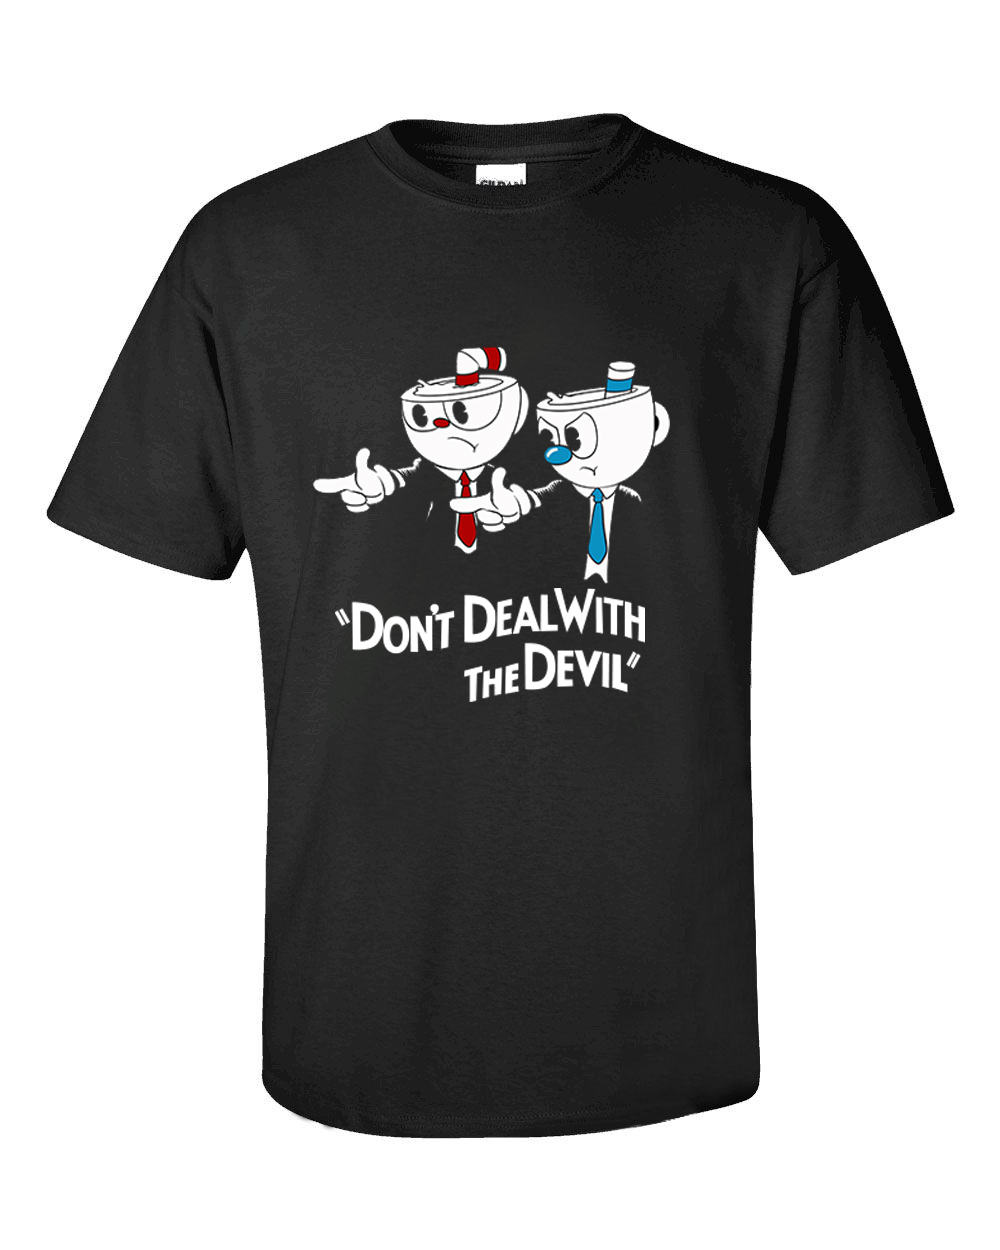 Hot Sale New Teacup Cup Head T Shirt Don't Deal With The Devil T-shirt Cotton Three Colors Shirt